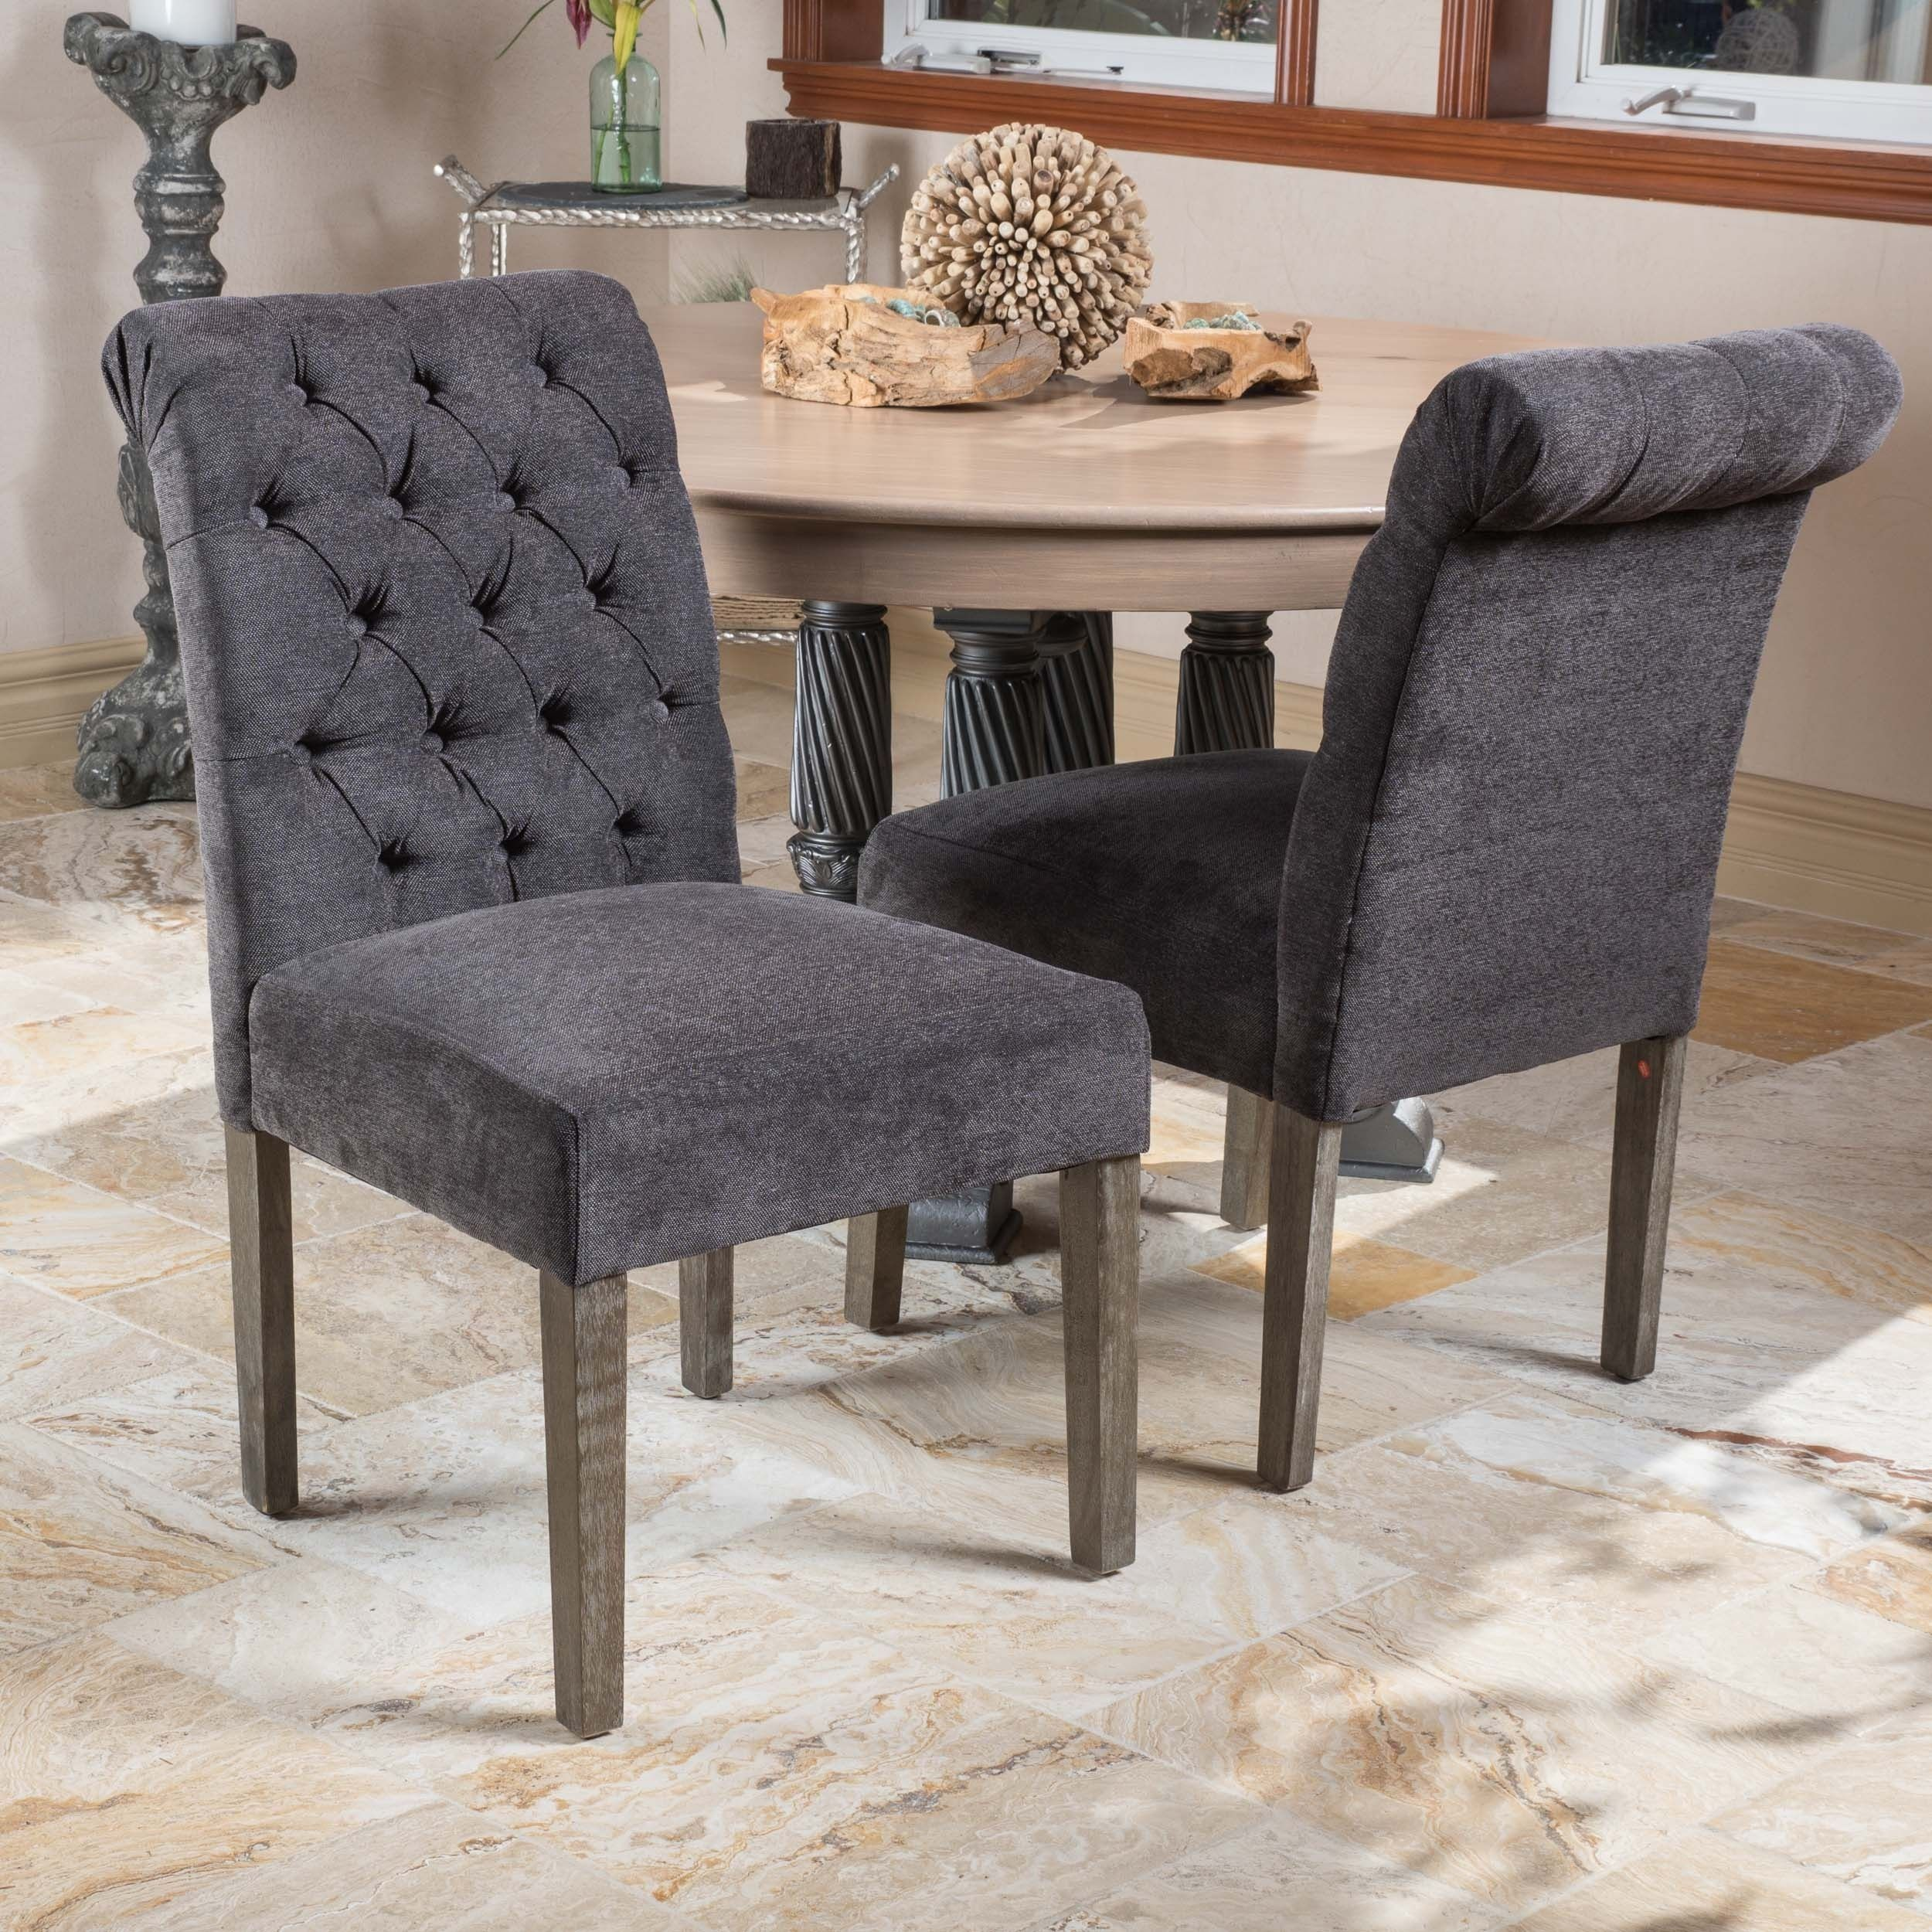 Overstock Com Online Shopping Bedding Furniture Electronics Jewelry Clothing More Linen Dining Chairs Gray Dining Chairs Dining Chairs